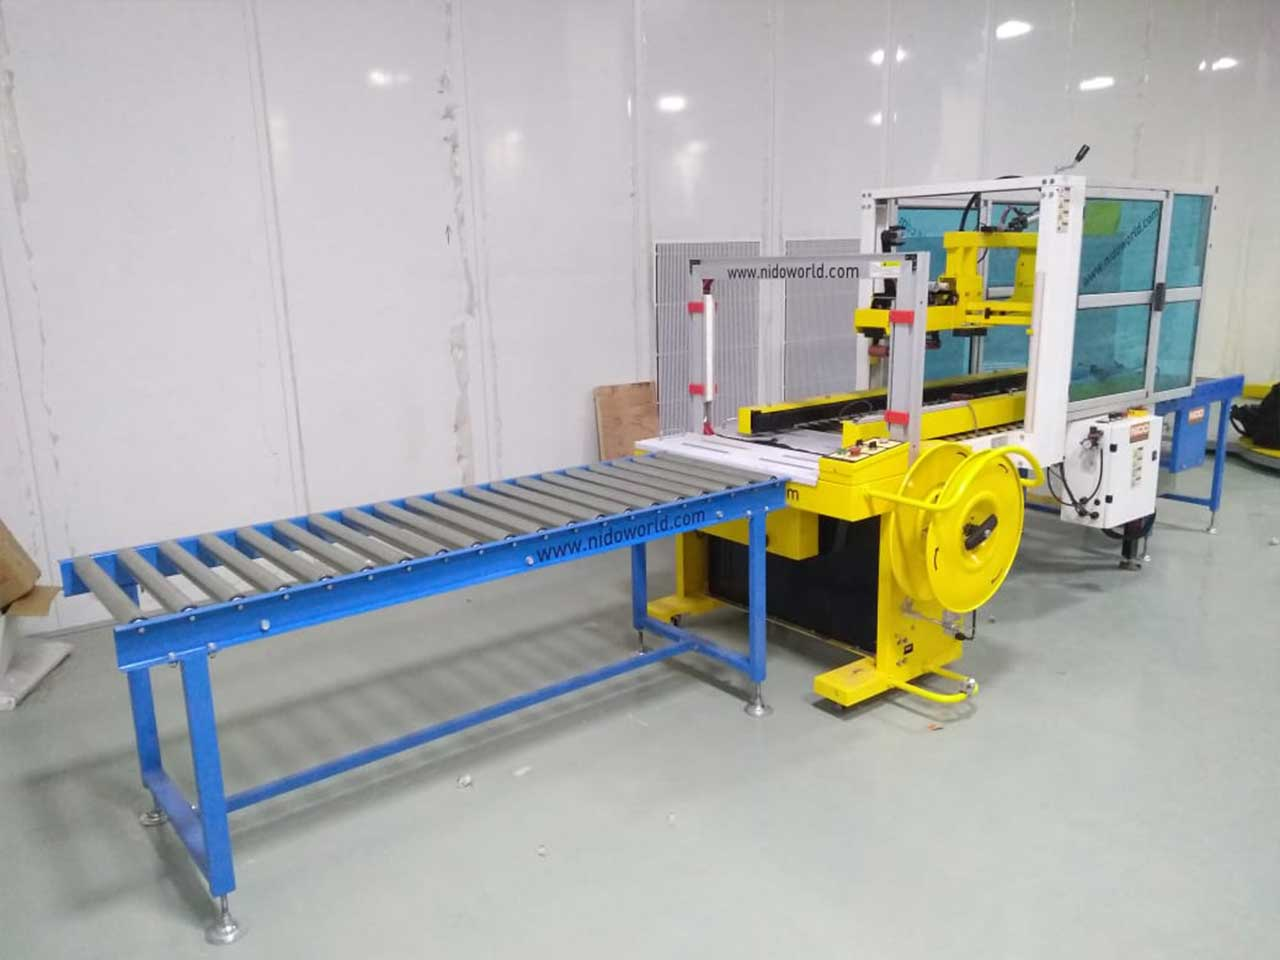 Semi auto flap folding carton sealer with auto strappingSemi Automatic Flap Folding & Carton Sealer with Auto Strapping